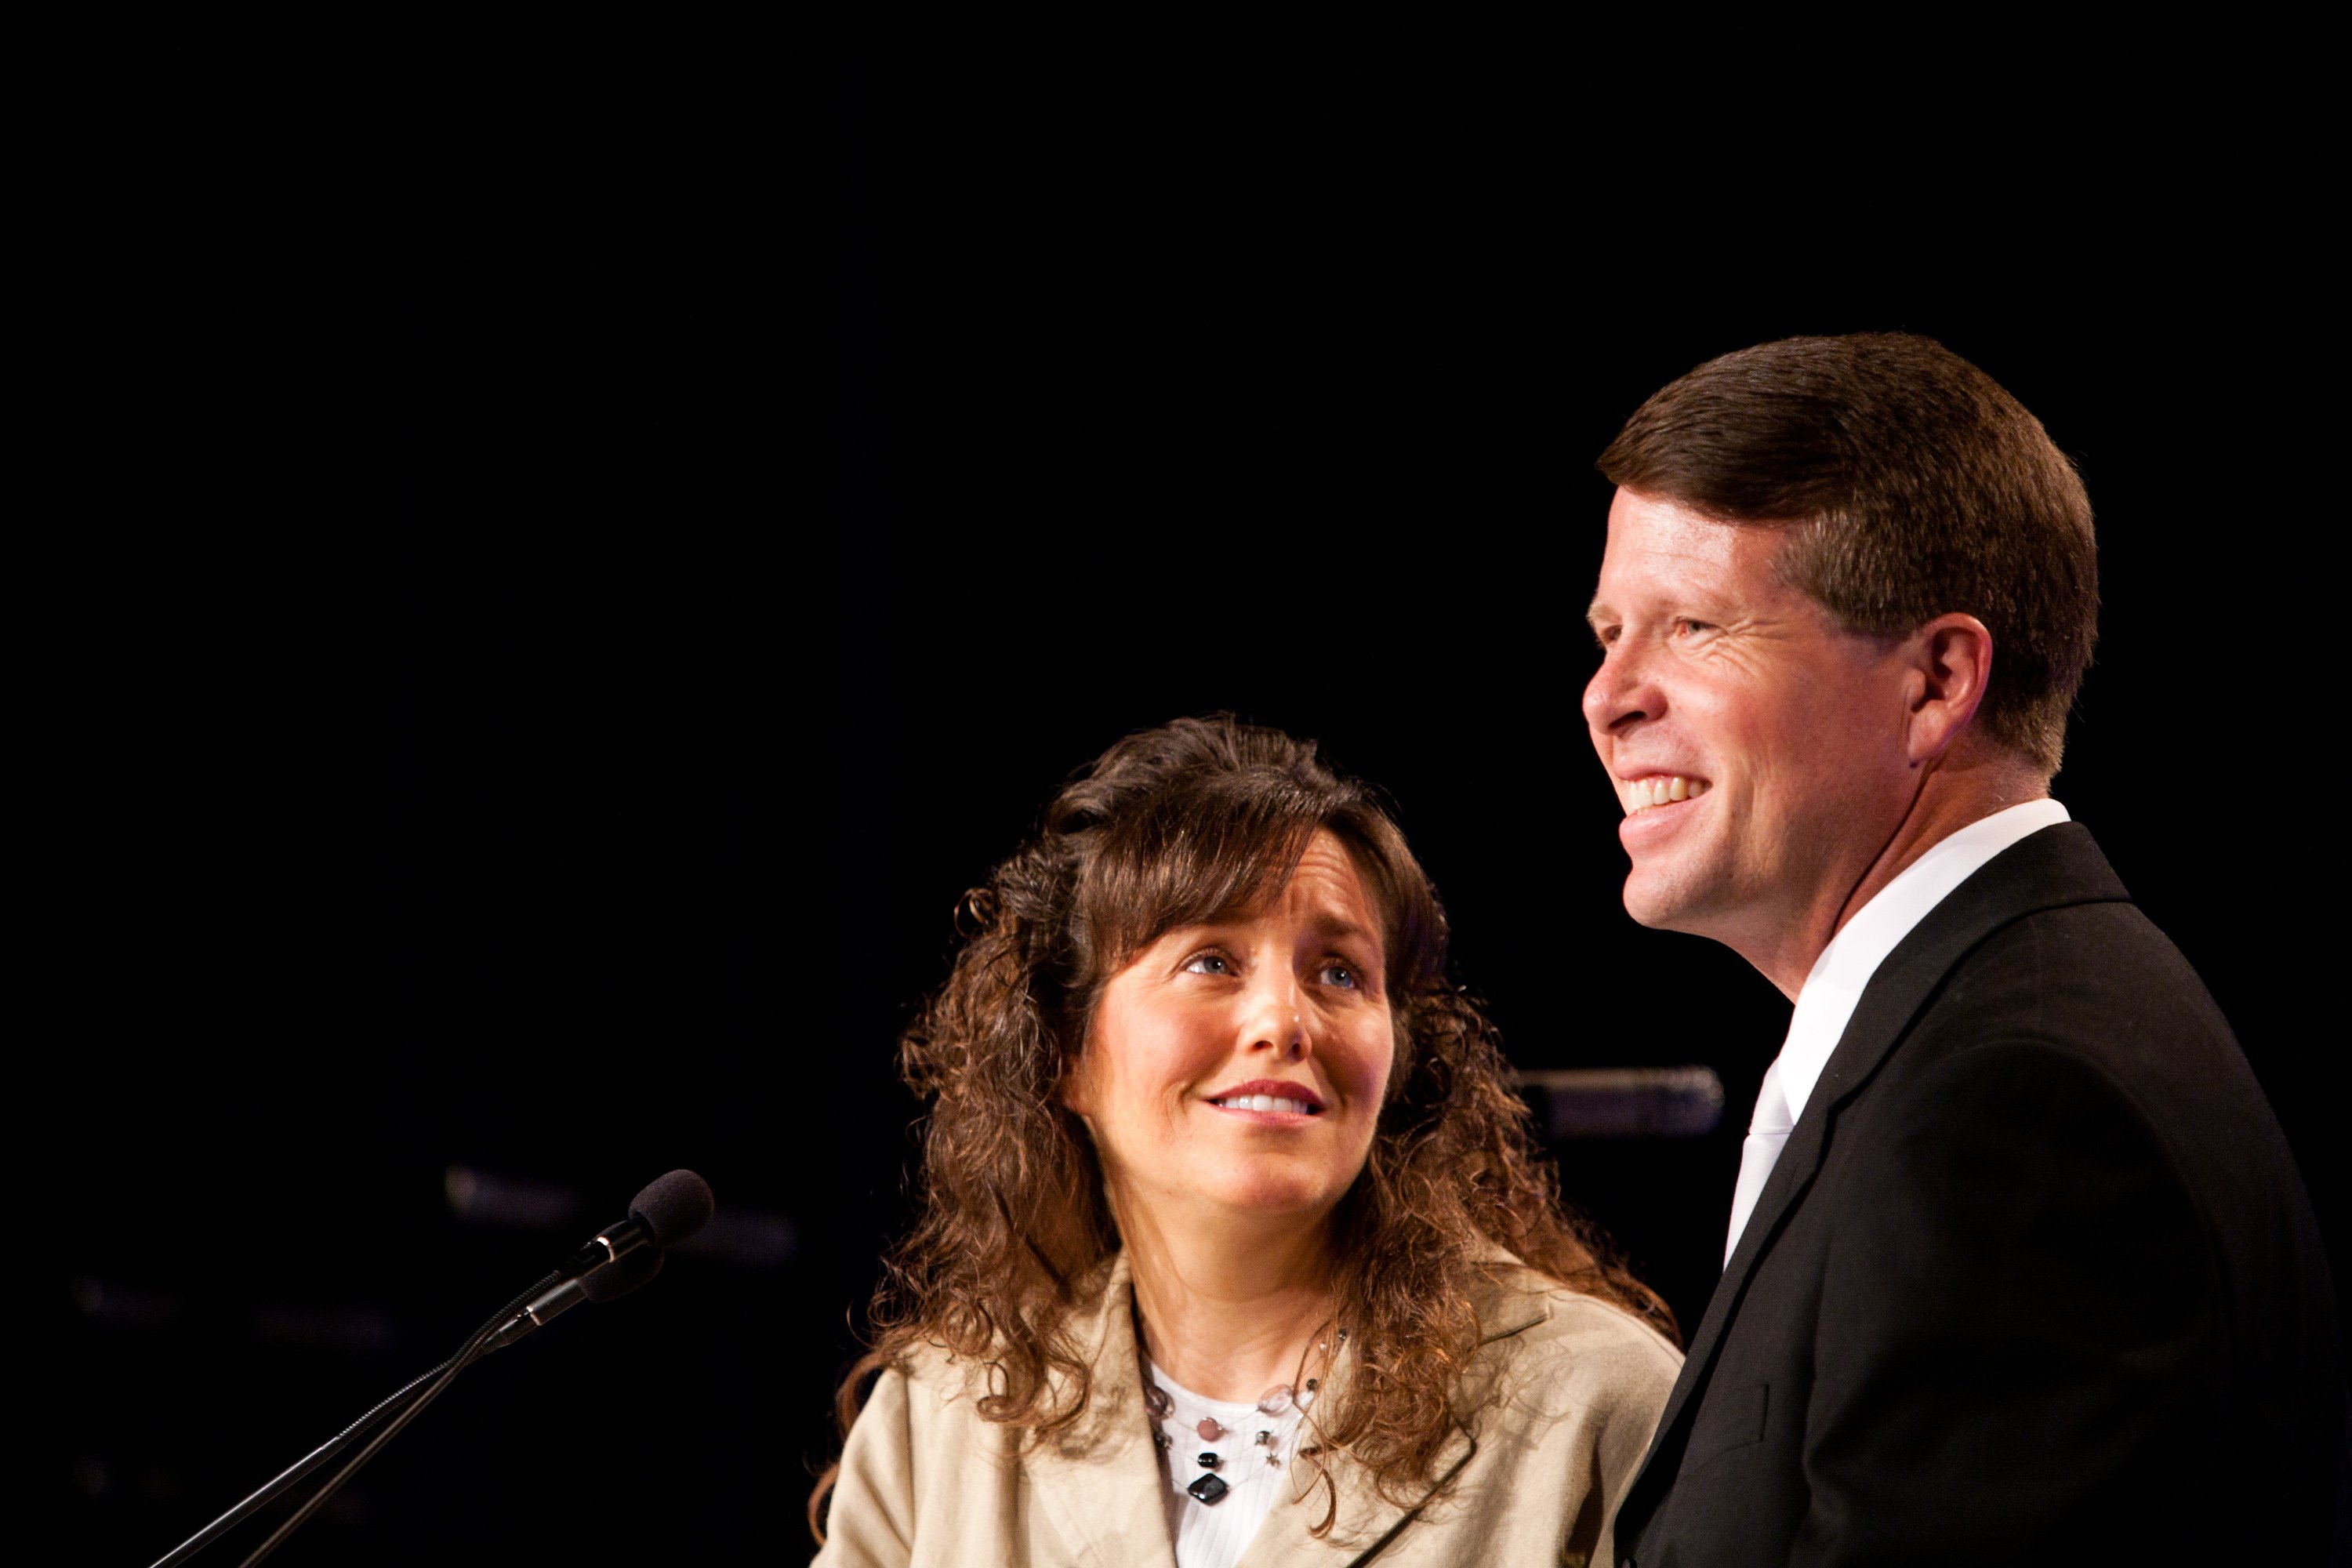 Michelle Duggar and Jim Bob Duggar speak at the Values Voter Summit in Washington, D.C., on September 17, 2010 | Photo: Getty Images